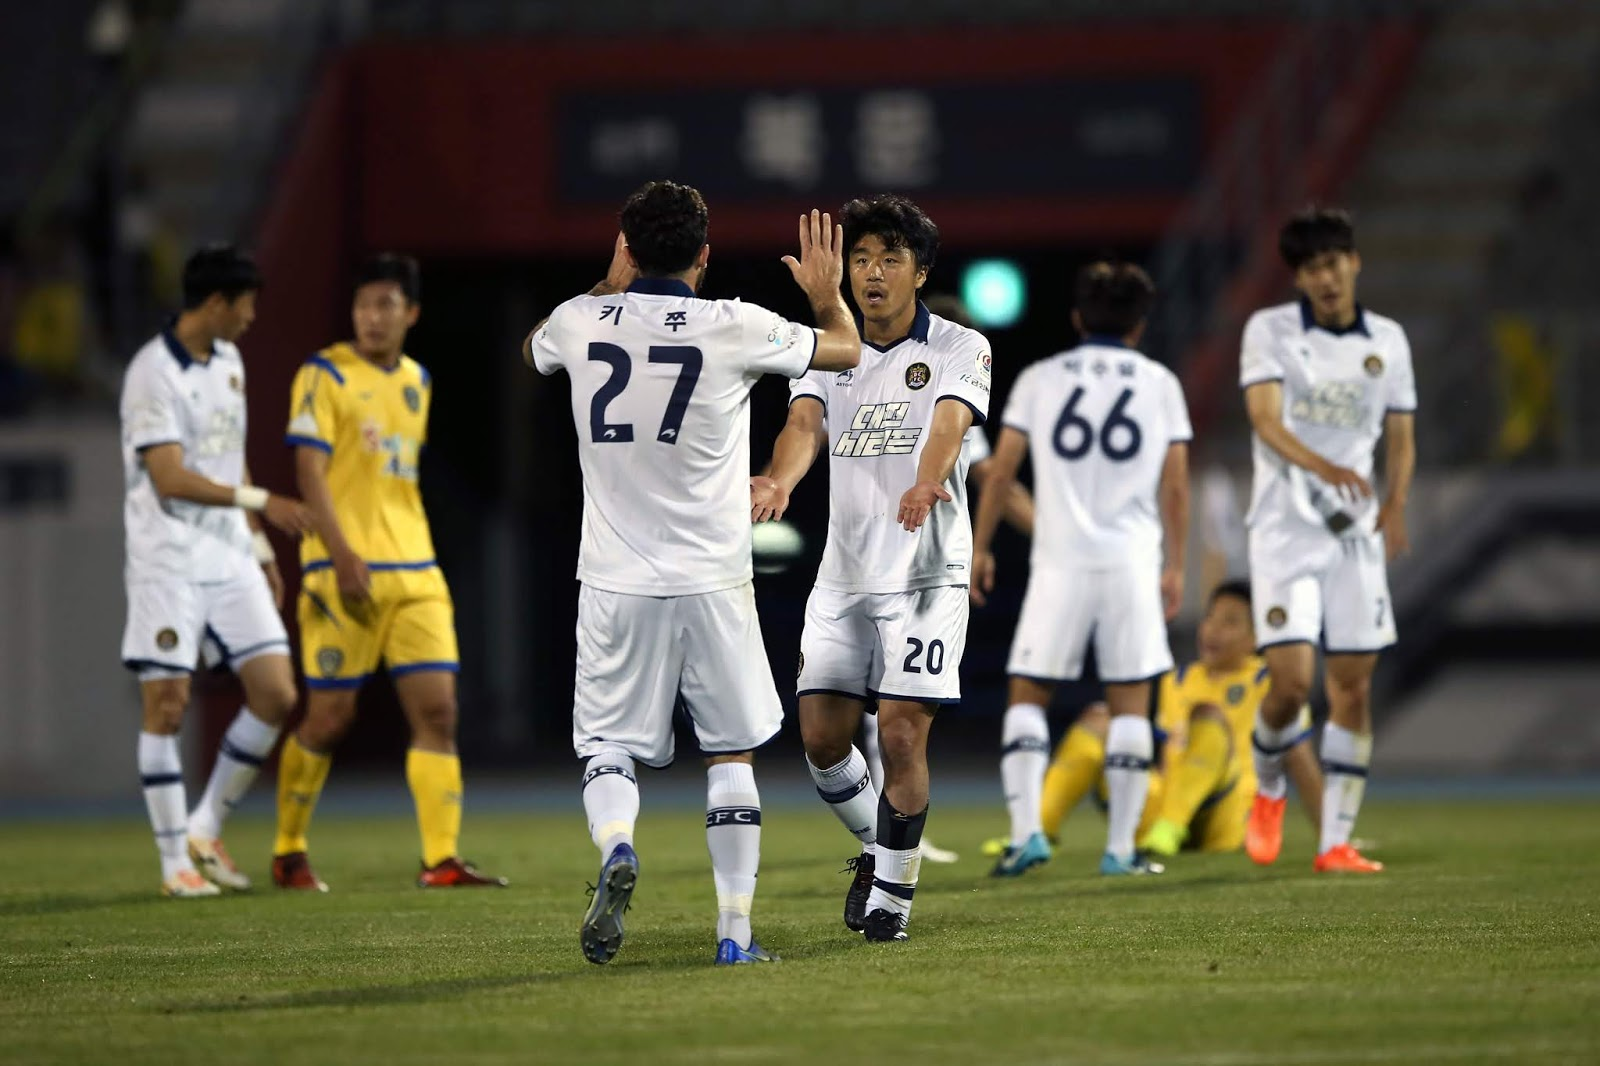 Preview: Asan Mugunghwa Vs Daejeon Citizen